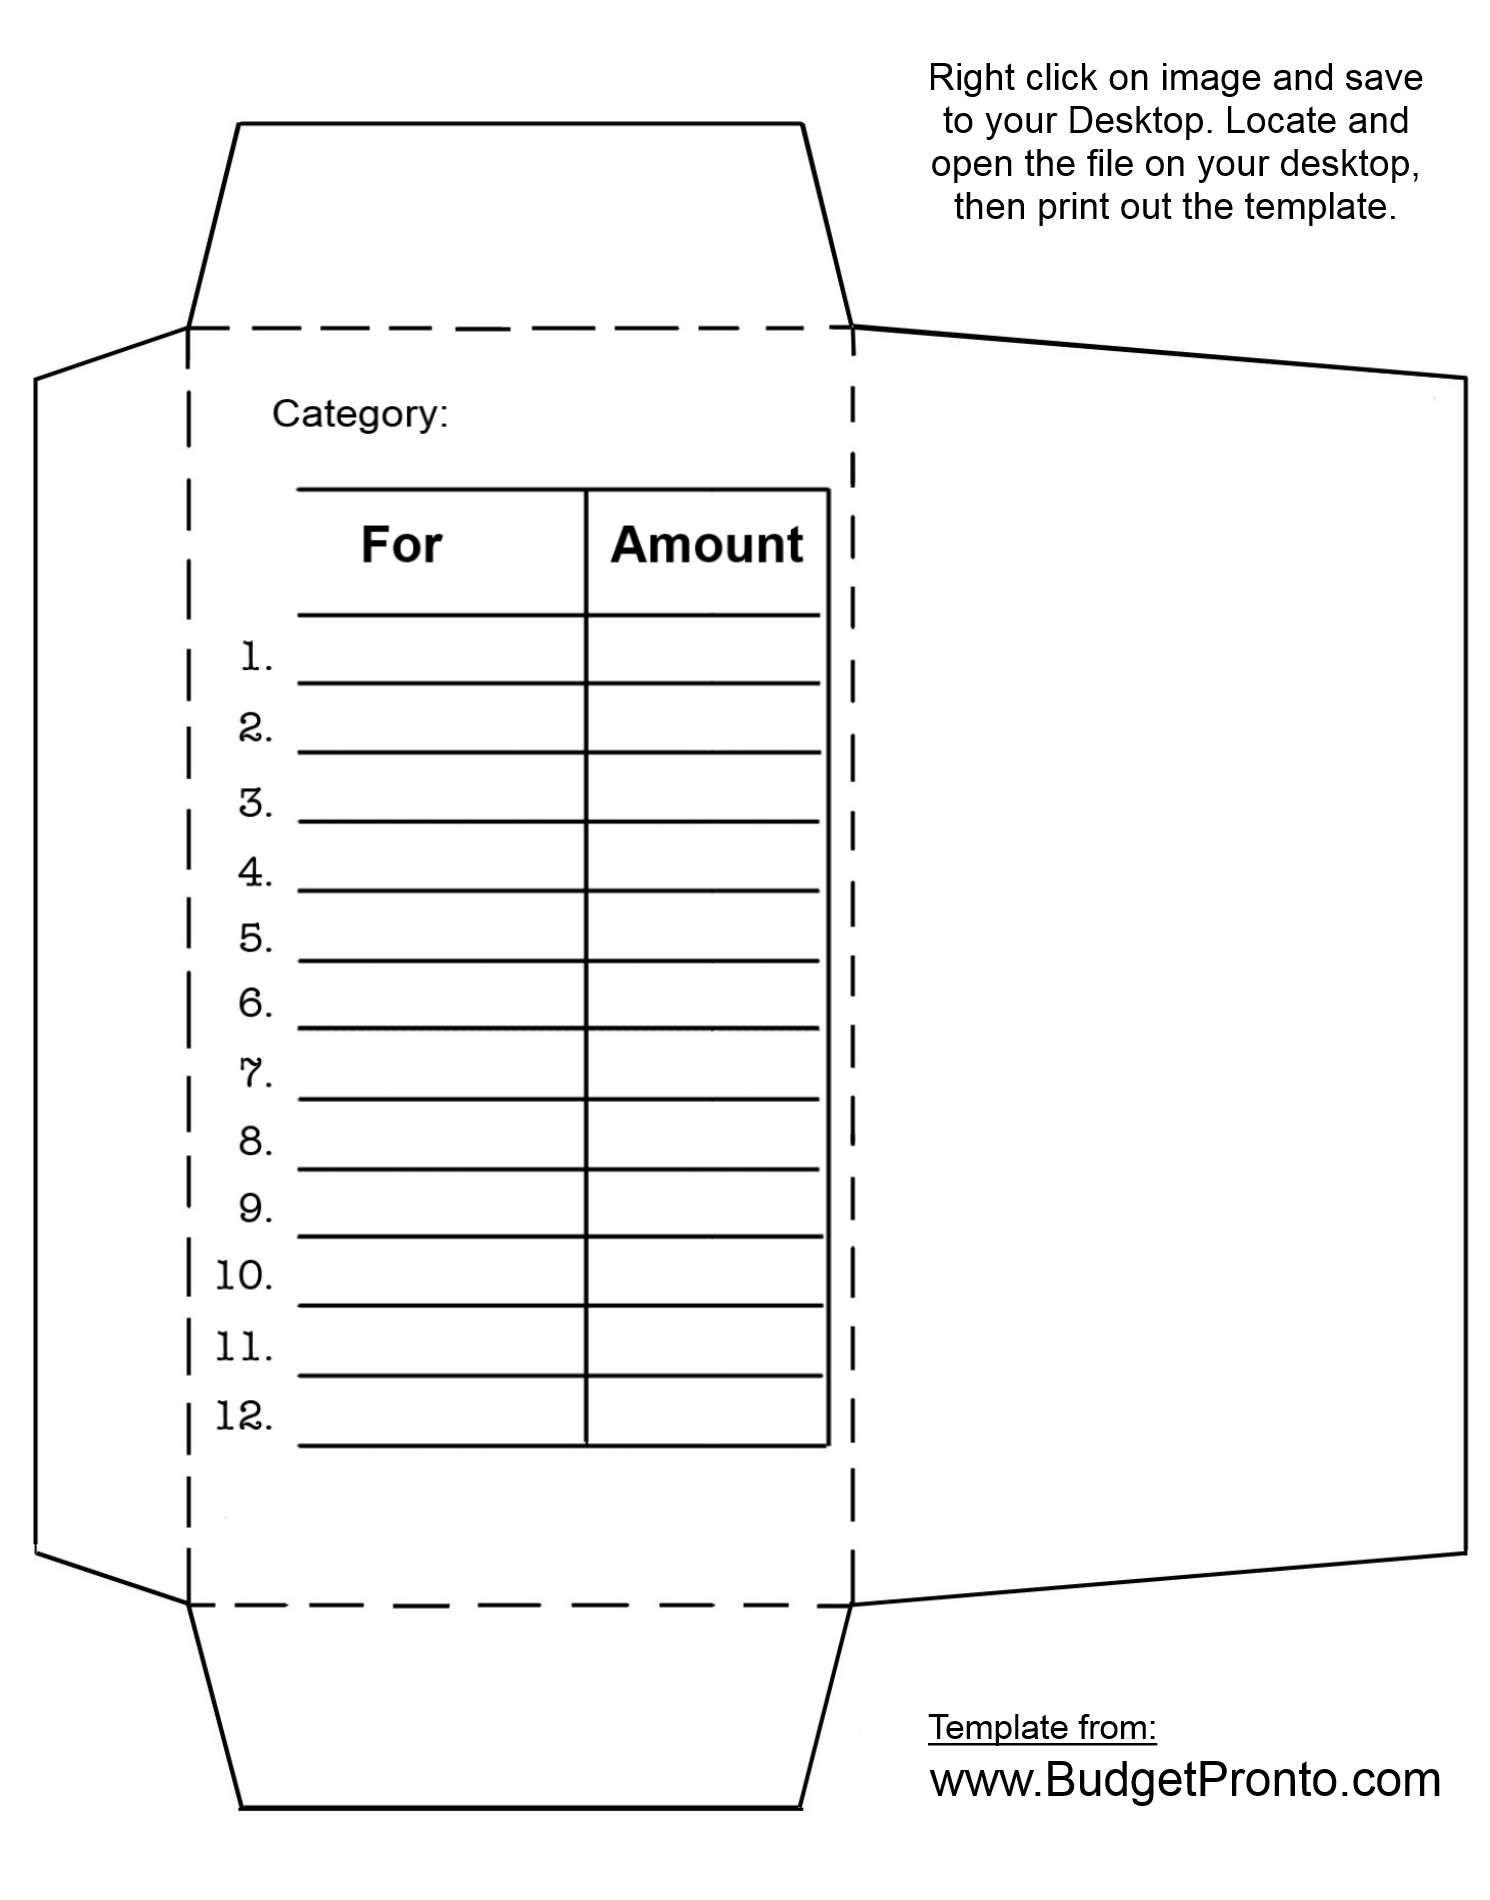 template for budgeting money - cash envelope printout template budgeting pinterest